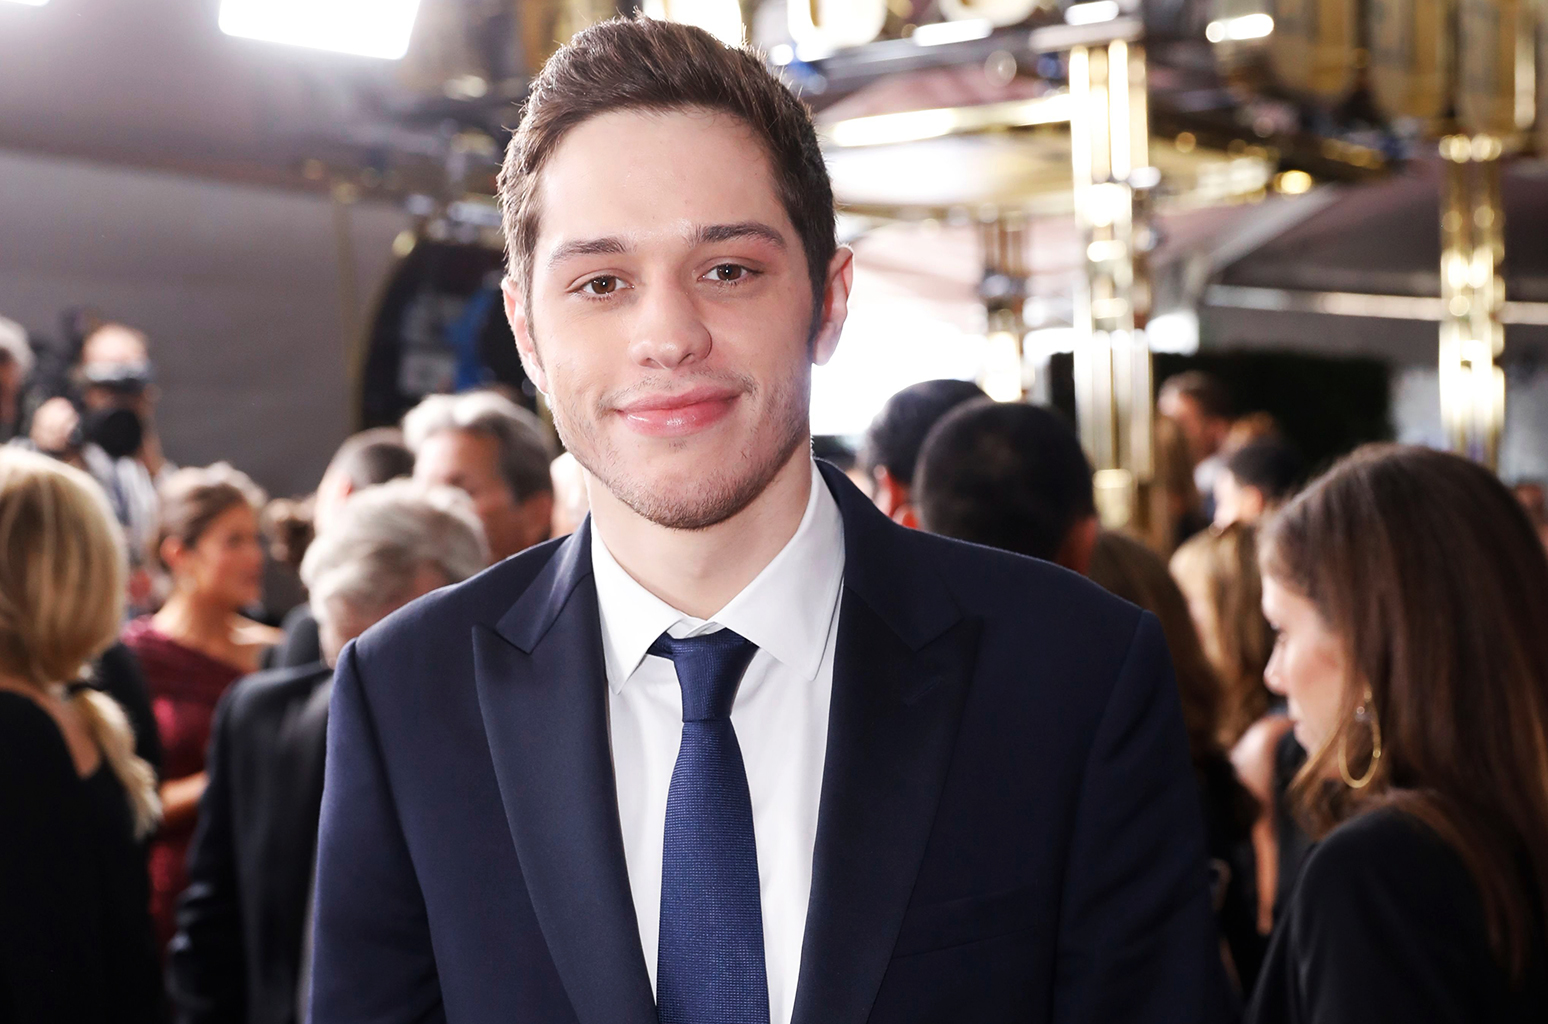 Pete Davidson Airs Ariana Grande's Dirty Laundry in Shocking Netflix Special